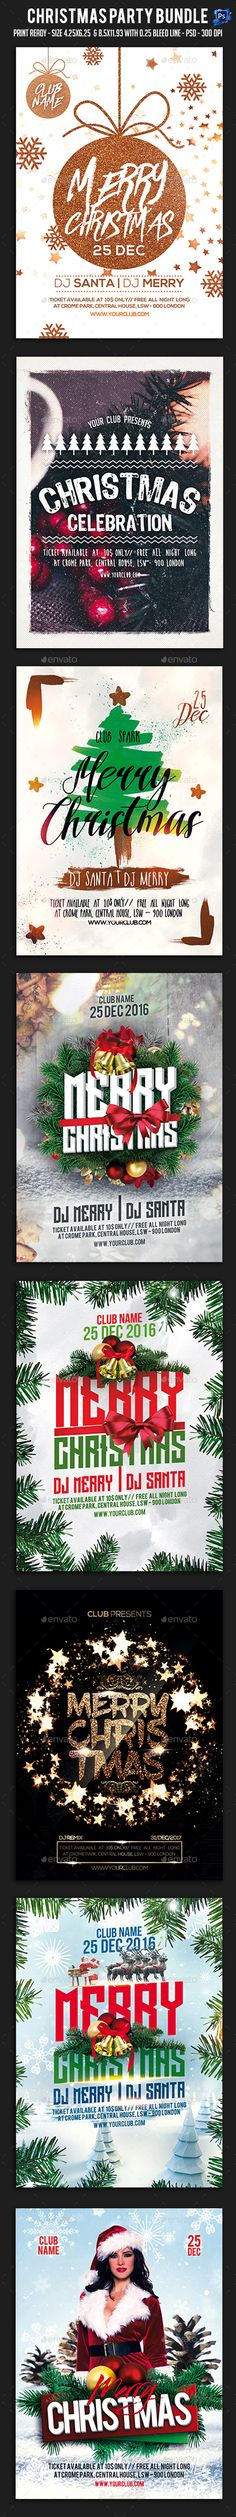 Christmas Party BundleIt¡¯s unique flyers, poster design for your business Advertisement purpose. All Elements are in individual layers and all text is editable! Easy to customize & edit ¨C All photos is a Smart Object (simply select, place & that¡¯s it!) Print d